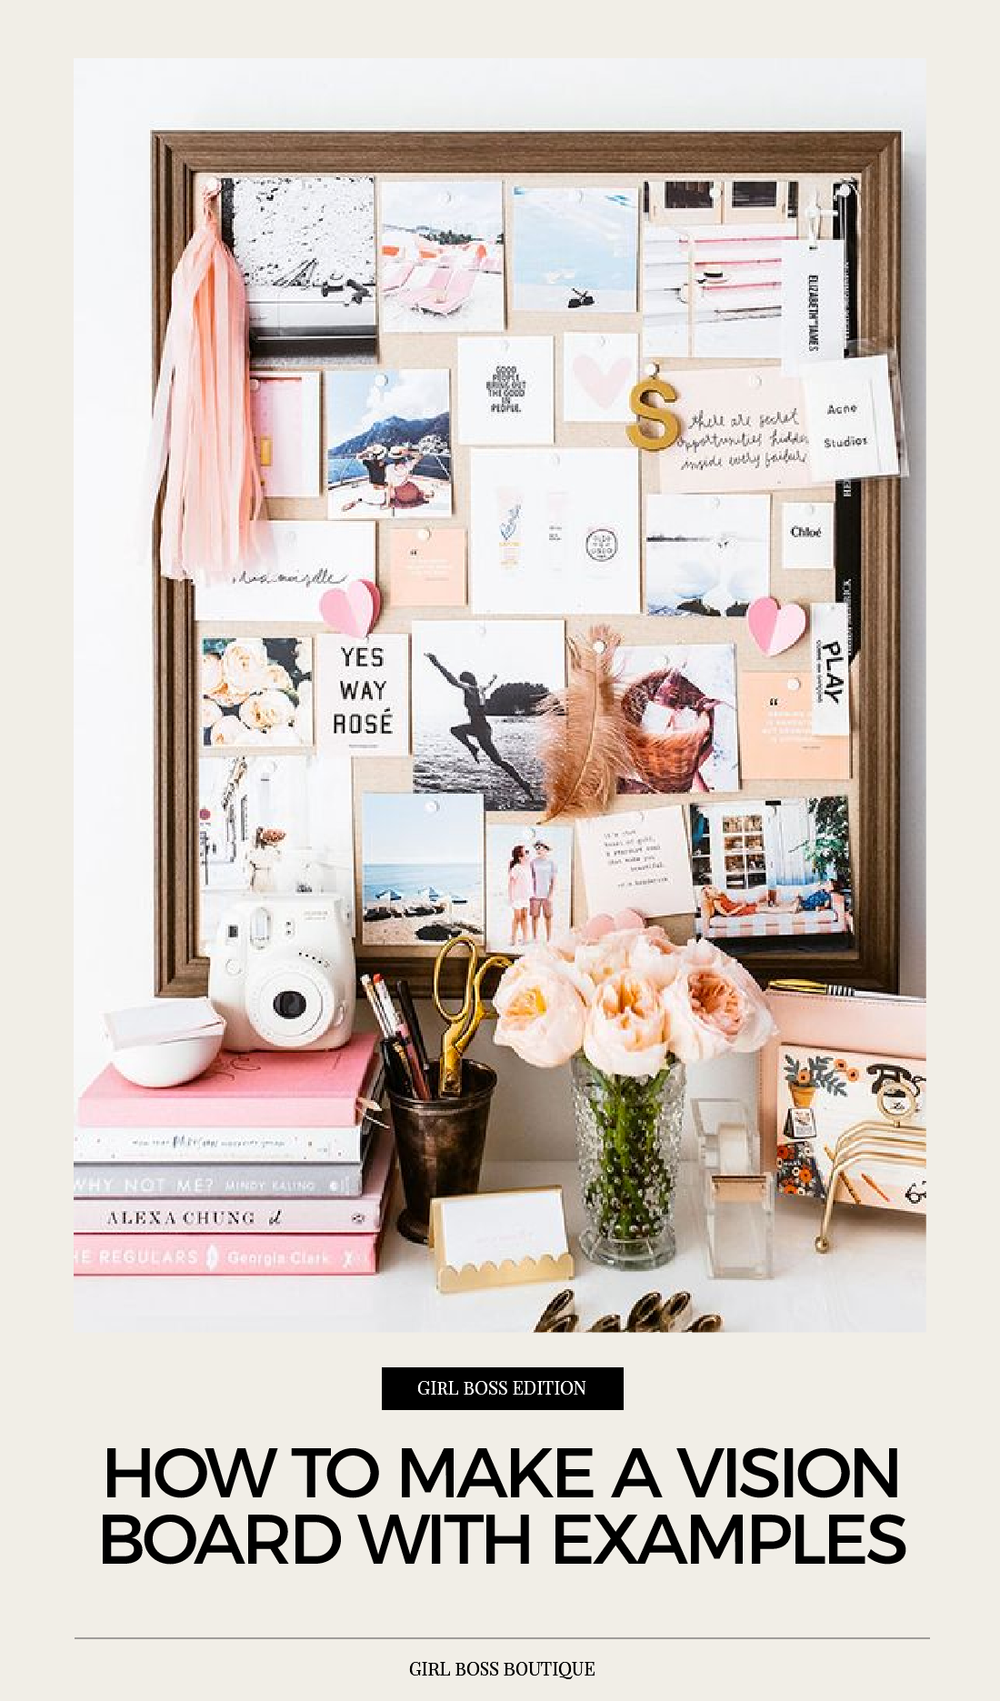 How to make a vision board with examples